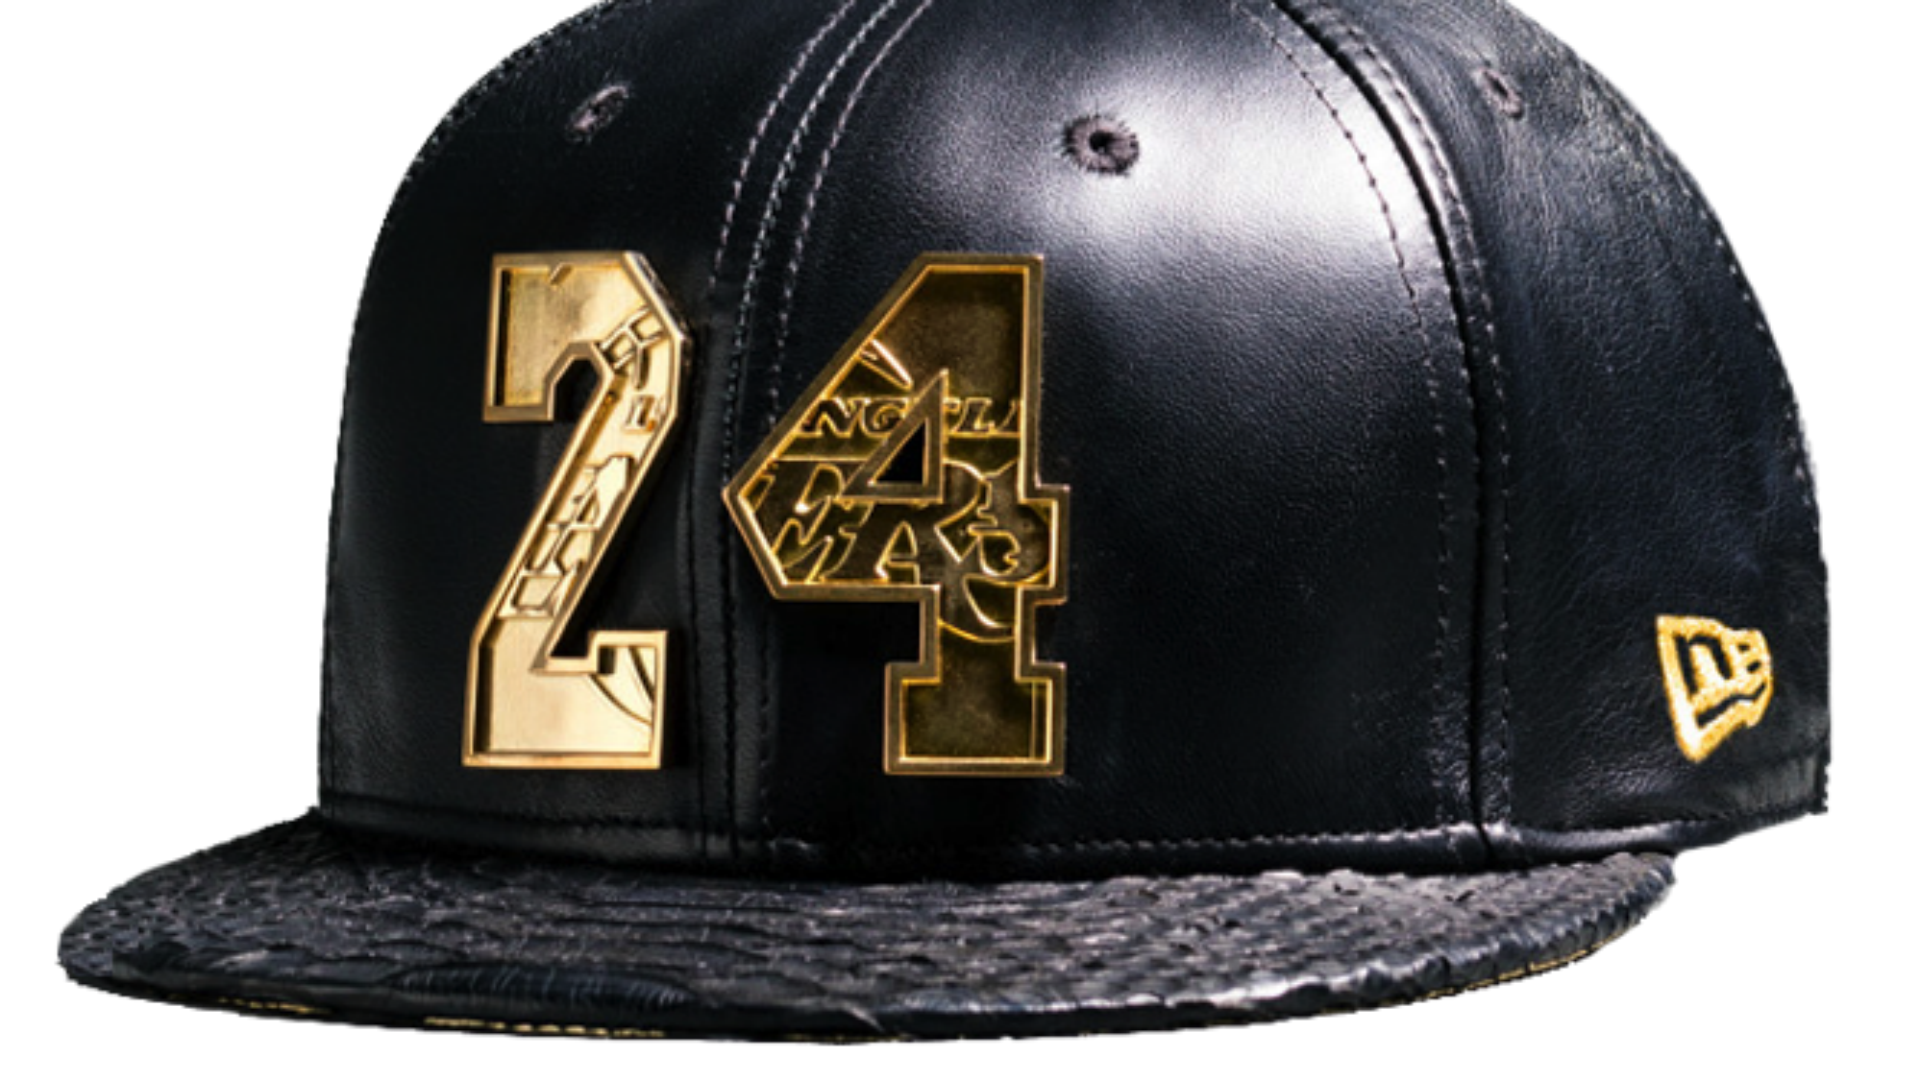 low priced f7688 03a37 ... lakers are selling 38024 hat and snakeskin jersey in honor of kobe  bryant nba sporting news ...